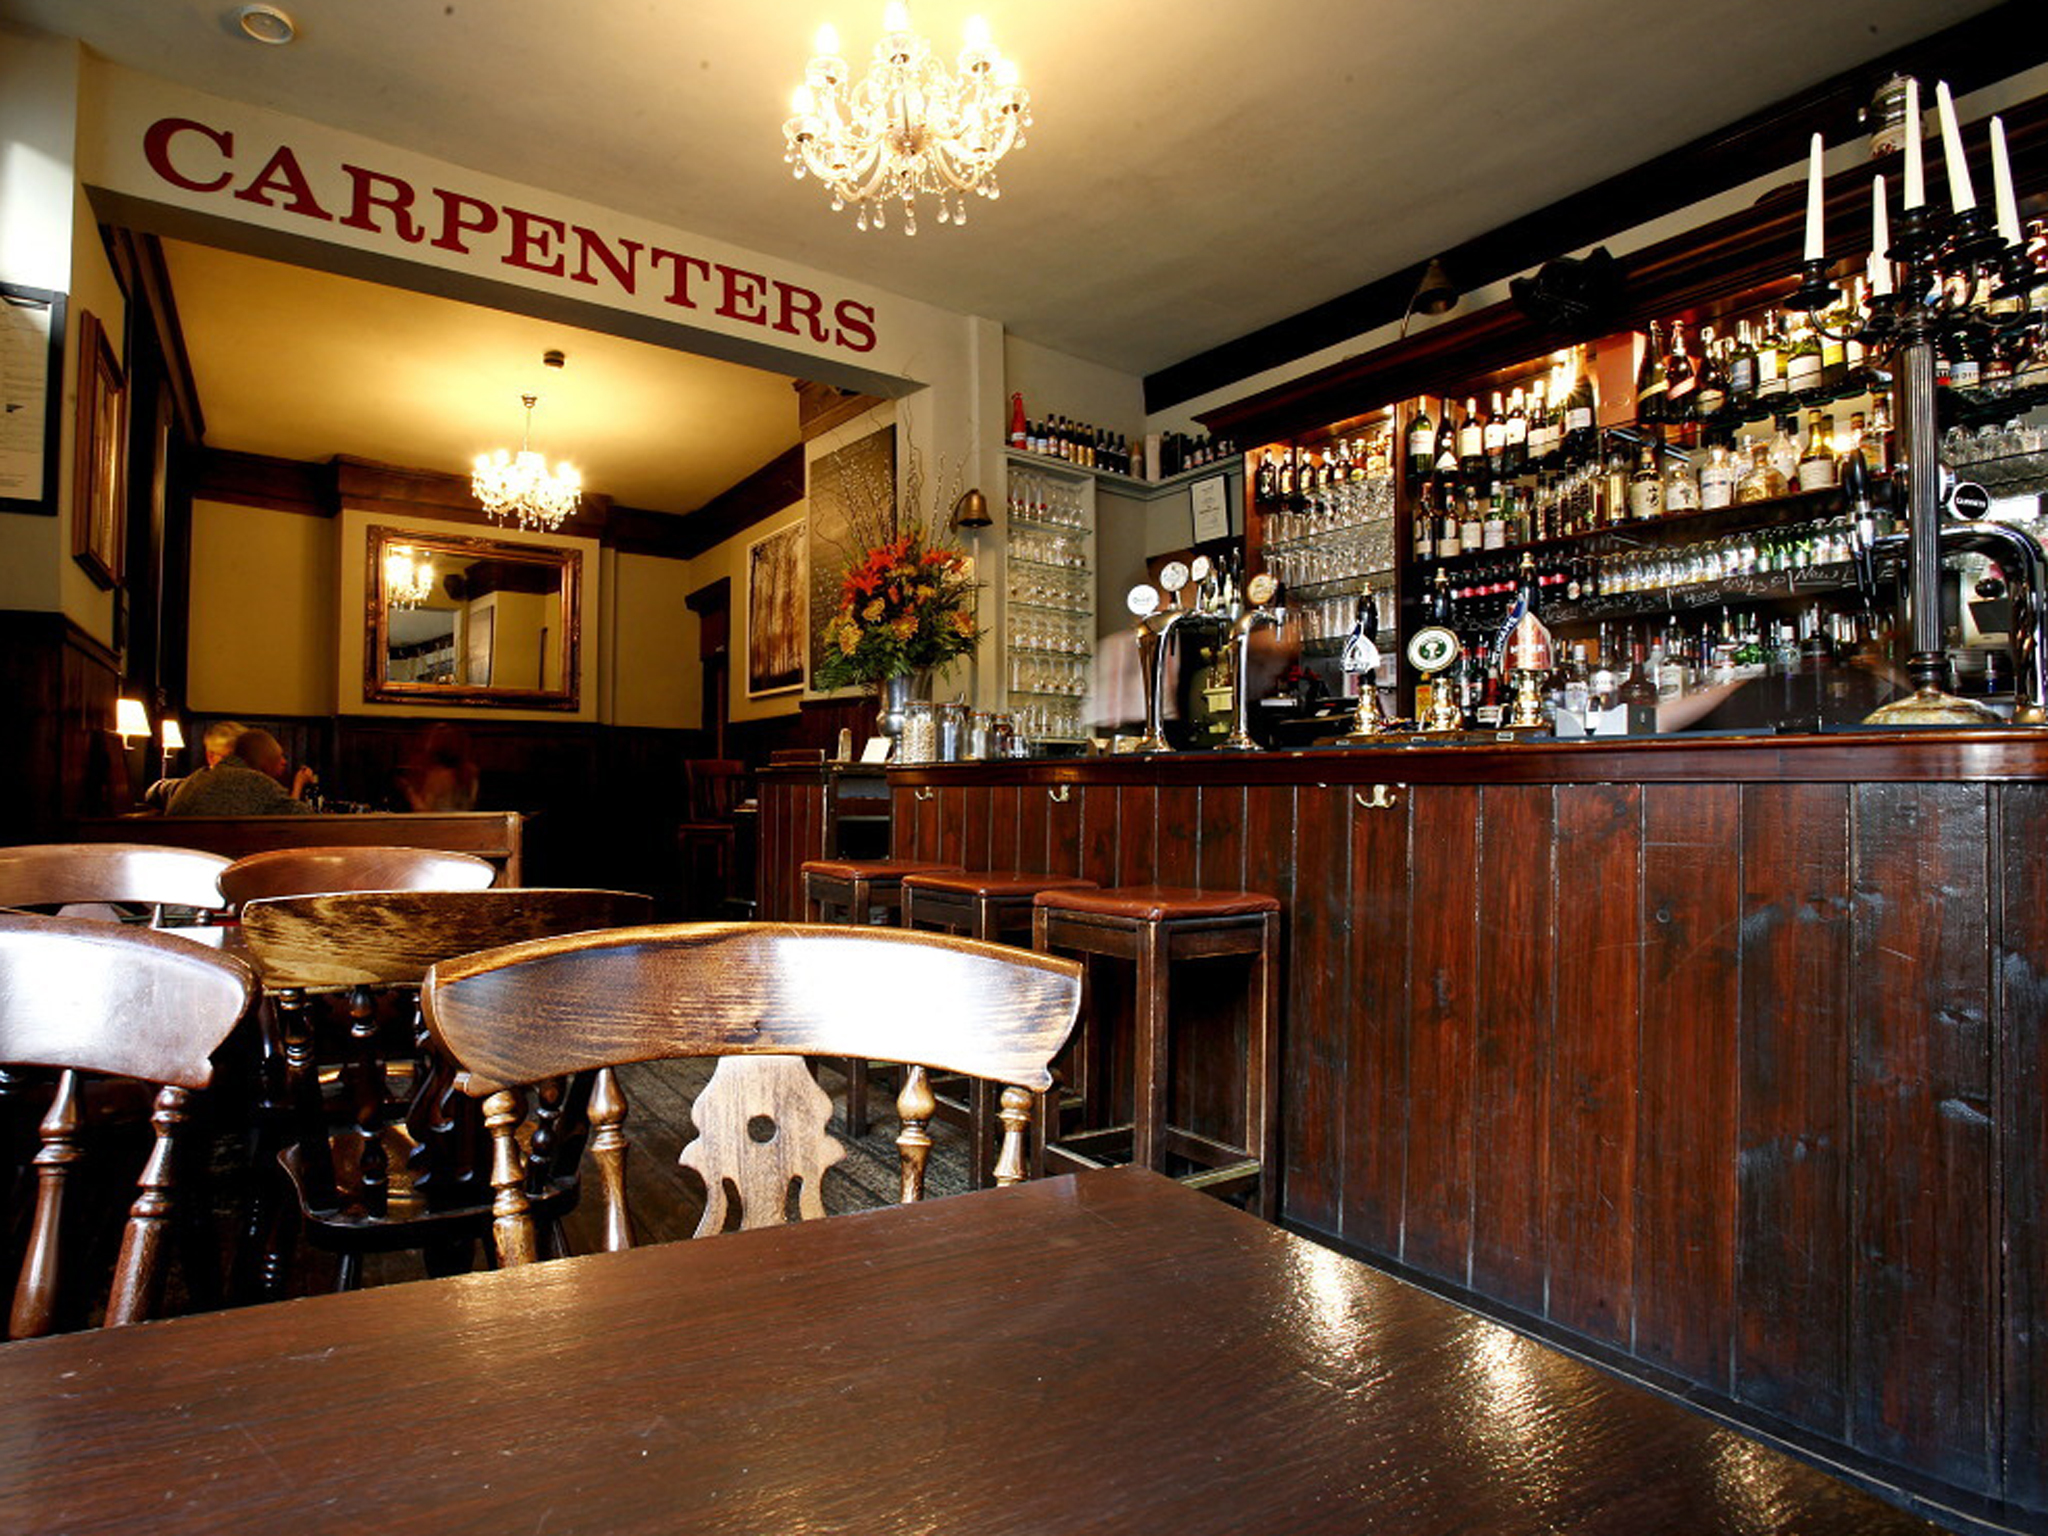 The 100 best bars and pubs in London - Carpenter's Arms, Bethnal Green